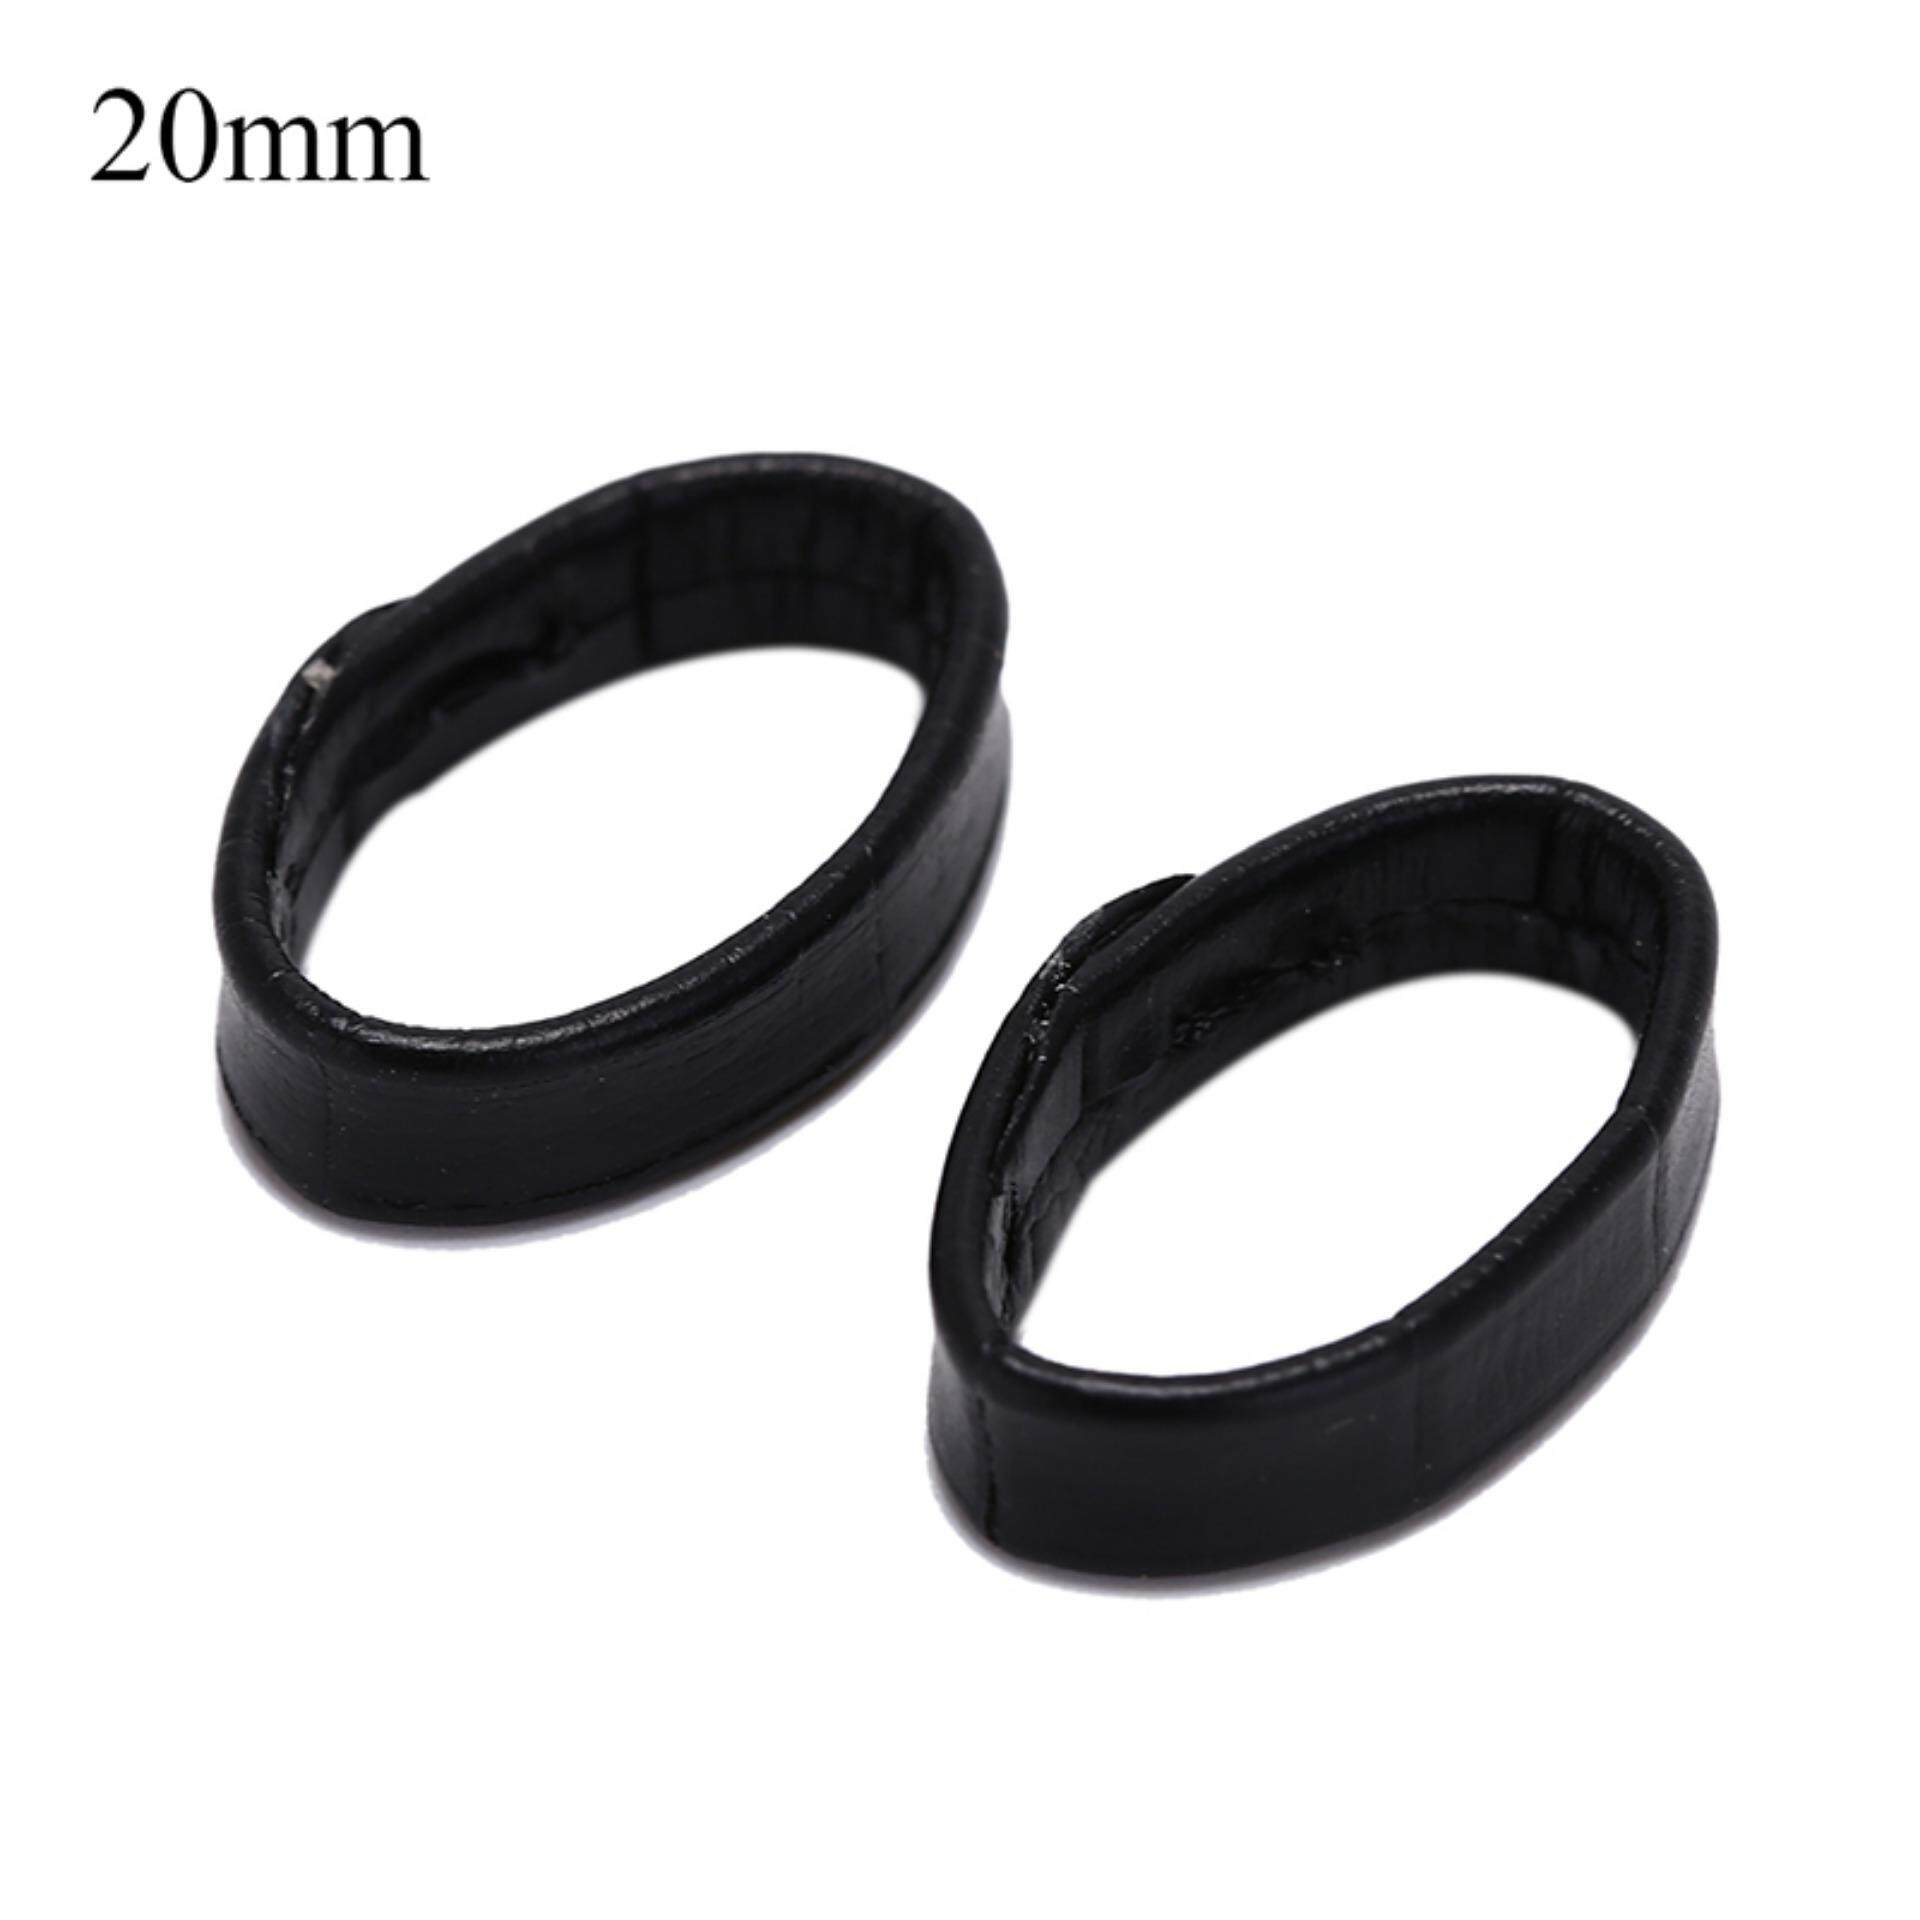 2pcs leather watch band loop strap holder locker keeper loops tool  20mm Malaysia